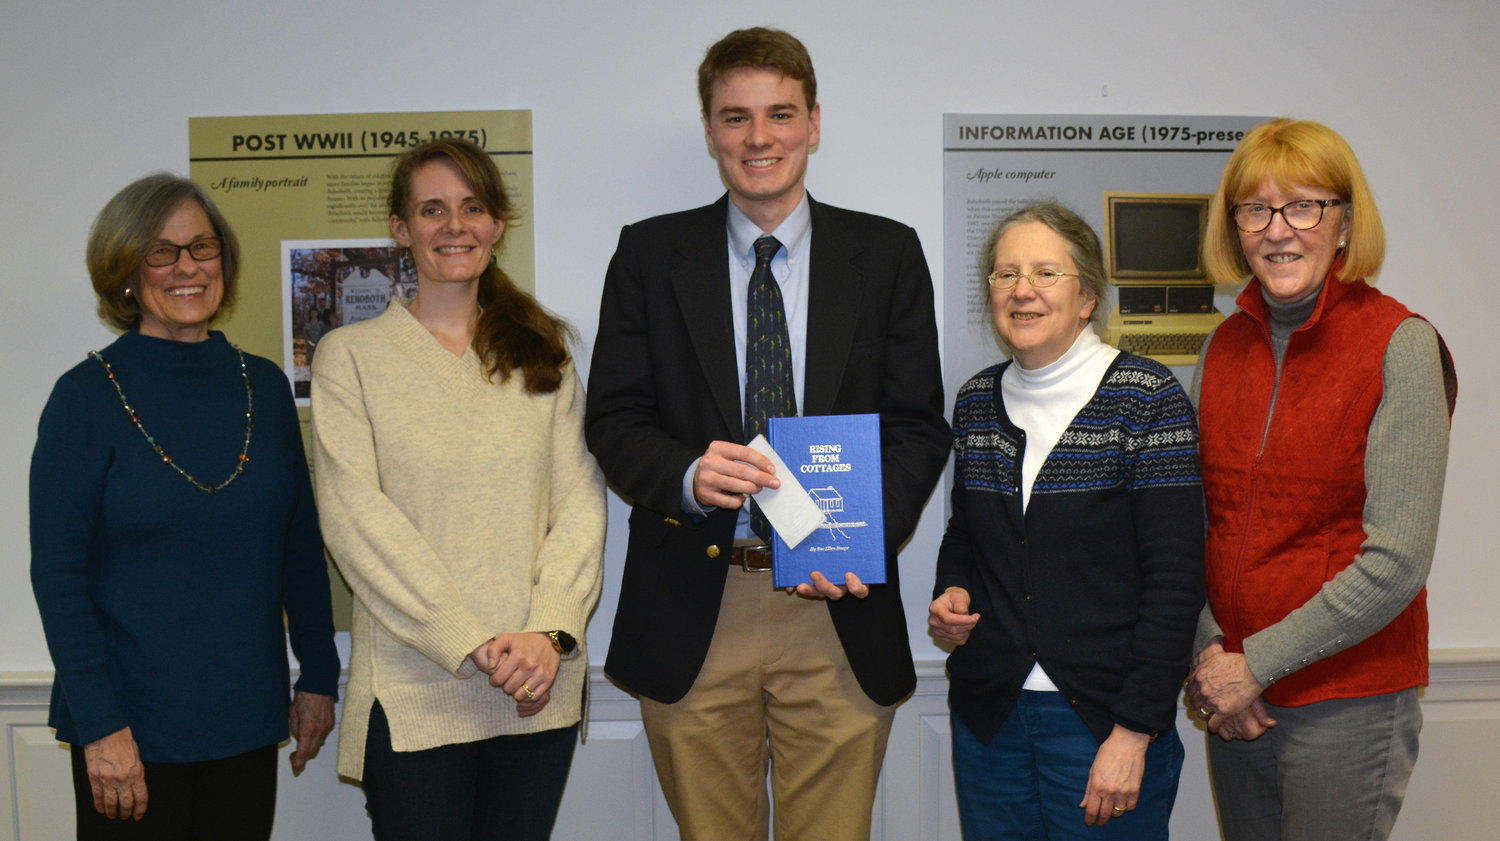 (from left to right): Joyce Coleman (RAS Scholarship Committee), Anna Deignan (RAS Scholarship Committee), Thomas Rice (Award Recipient), Rebecca Smith (RAS President), Maureen Whittemore (RAS Scholarship Committee).]